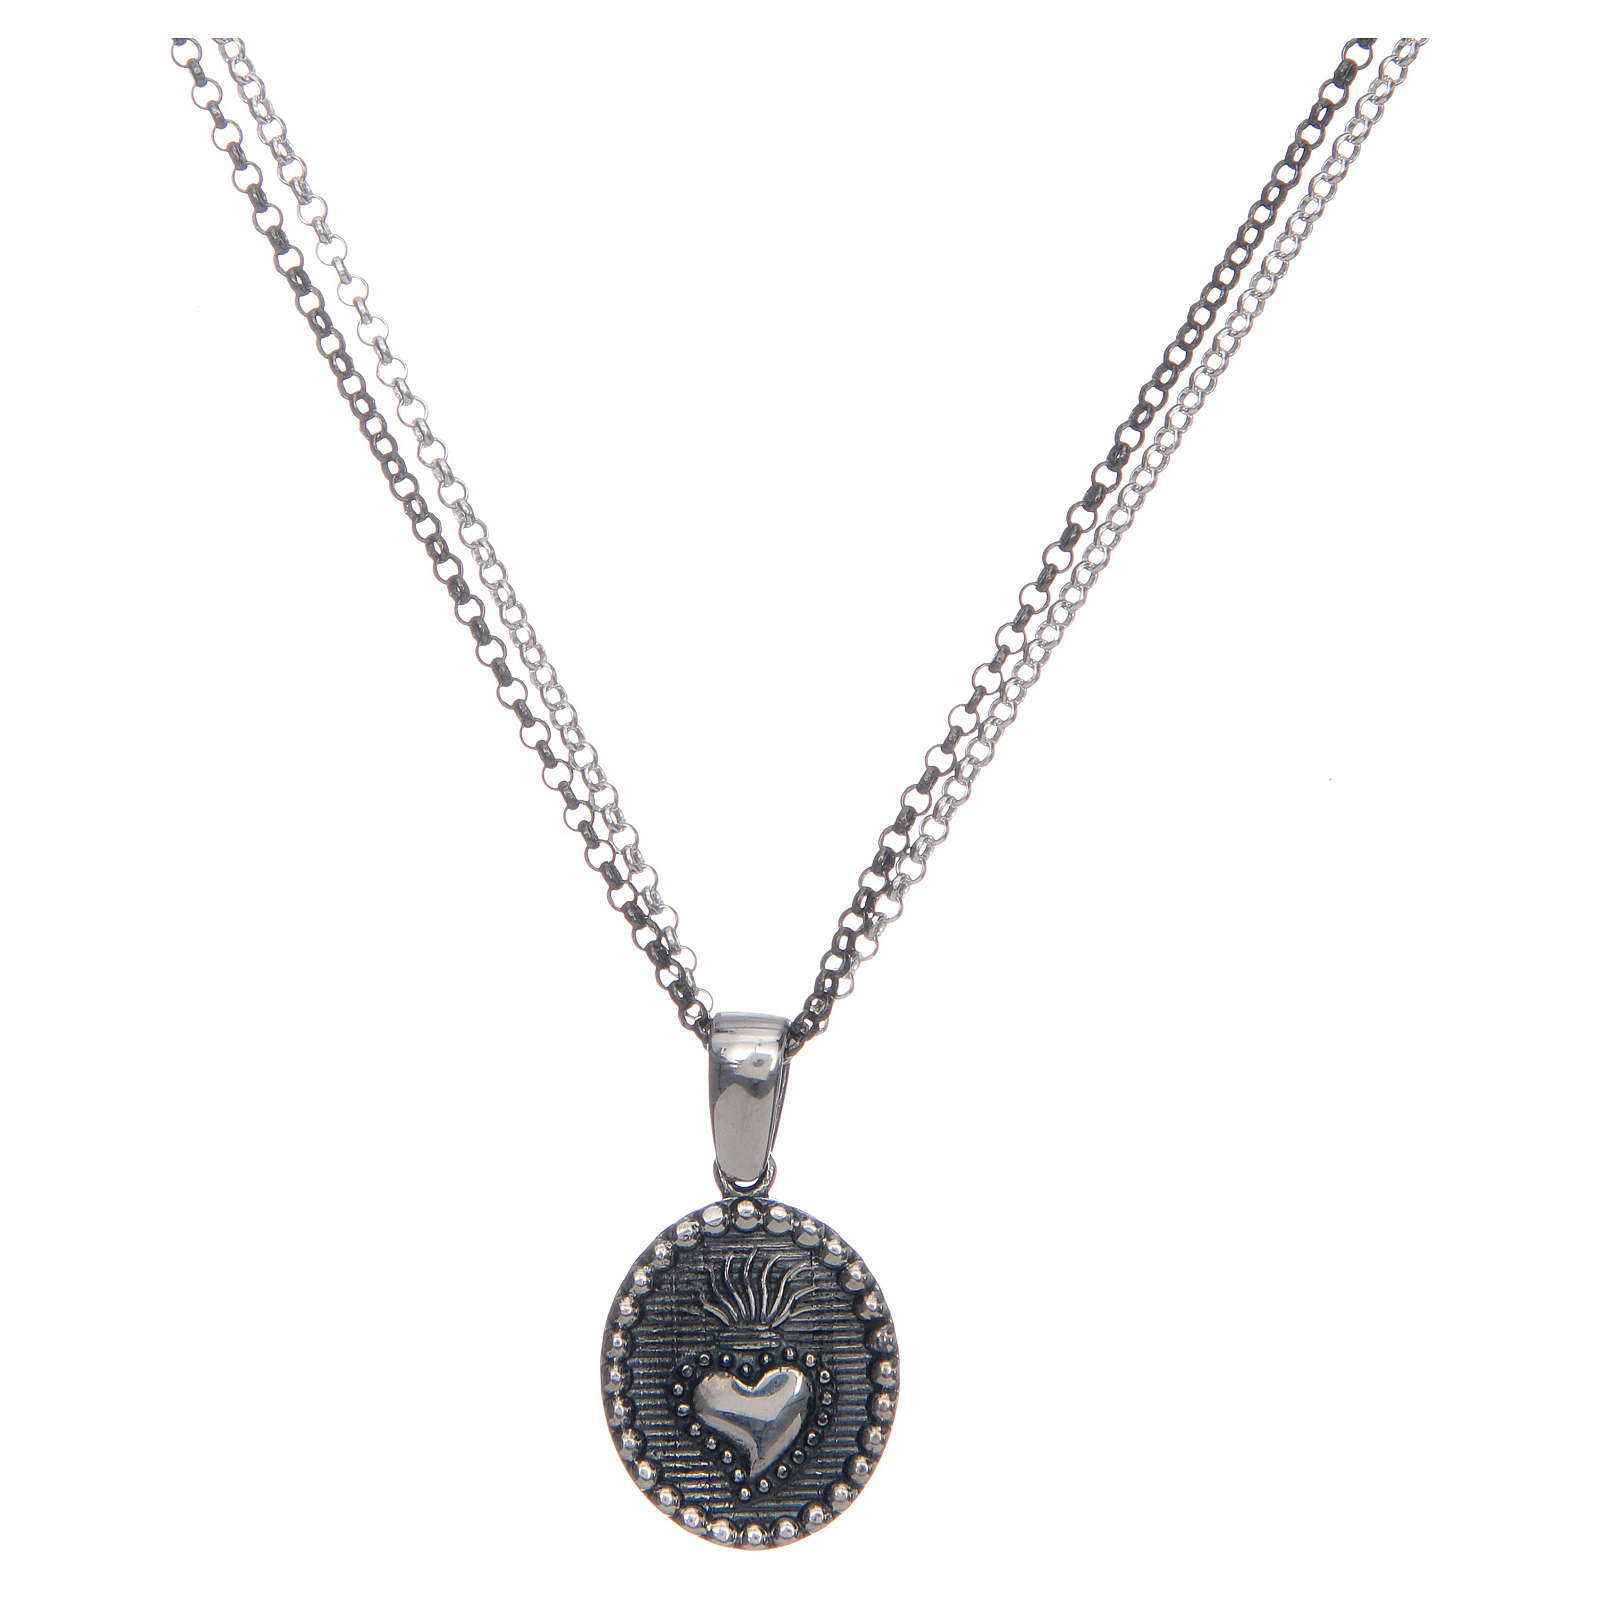 Amen necklace with Sacred Heart pendant in silver 4